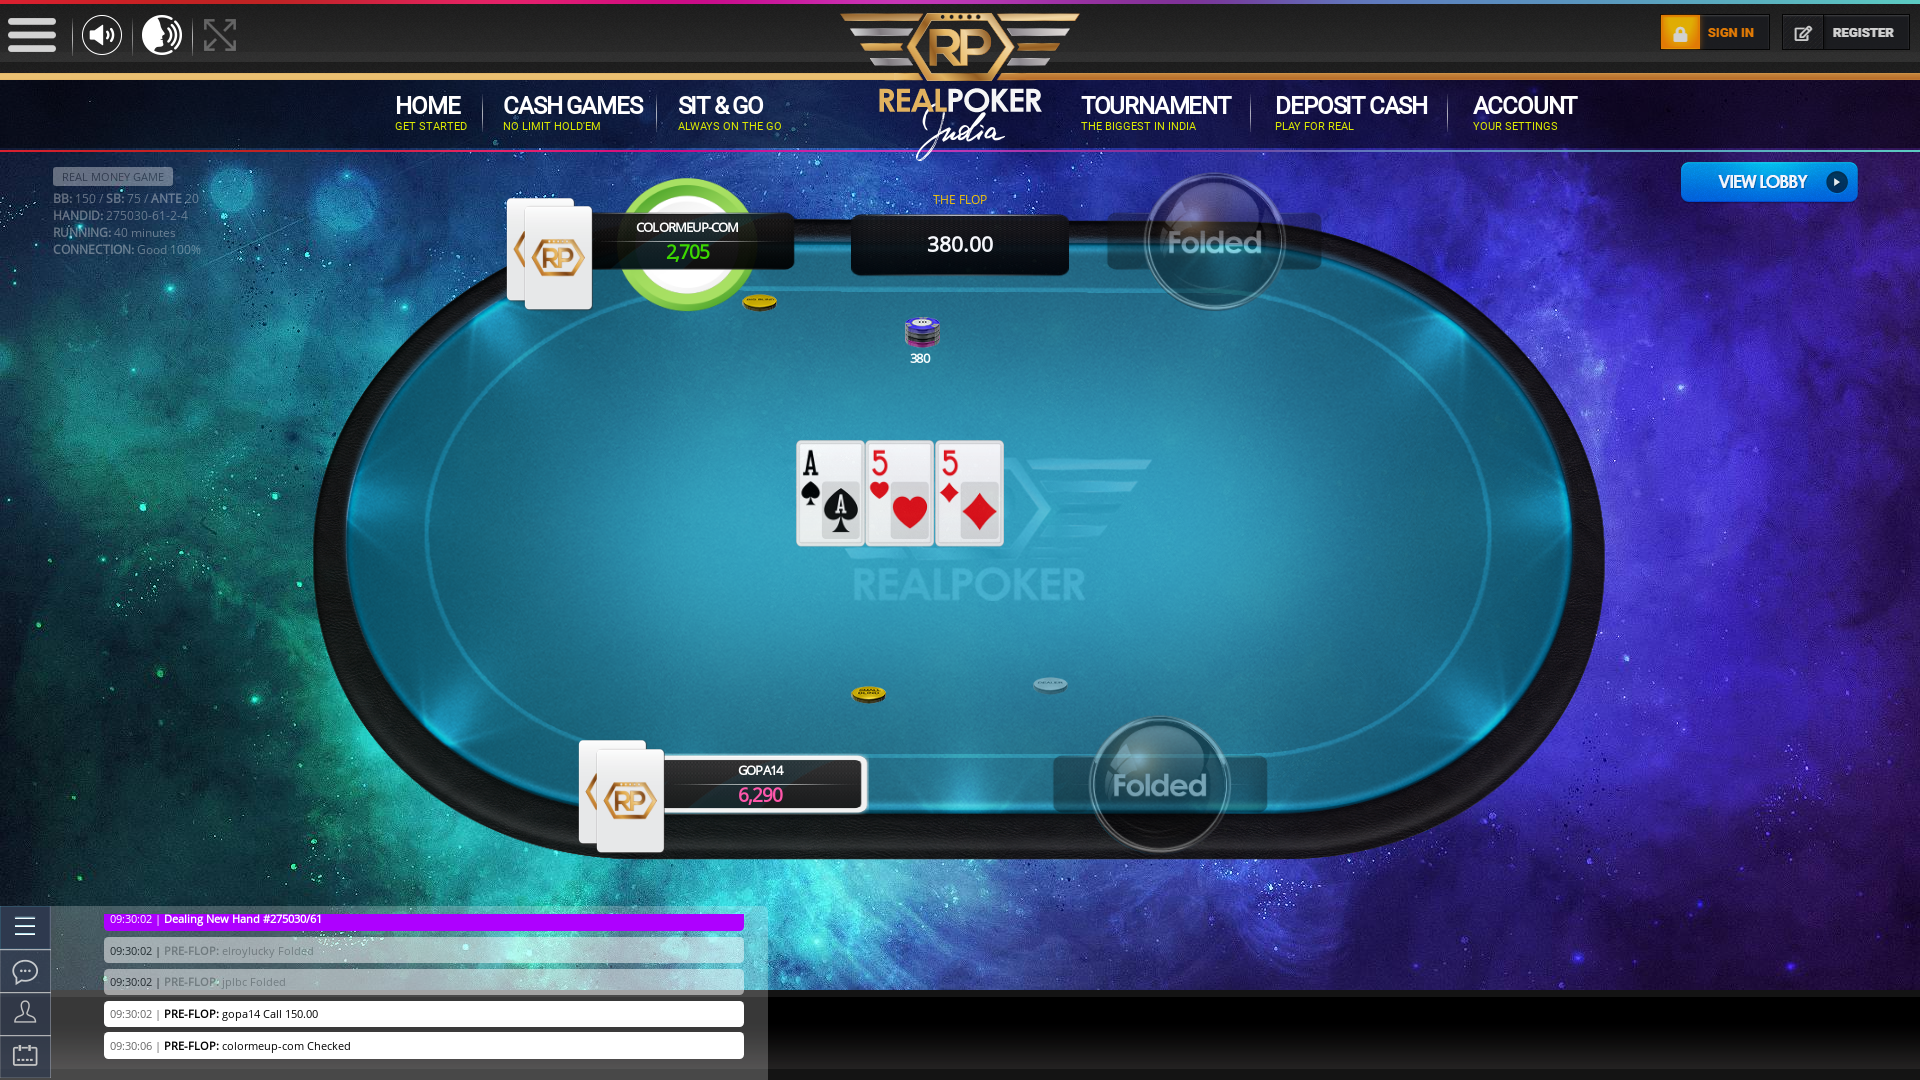 10 player texas holdem table at real poker with the table id 275030